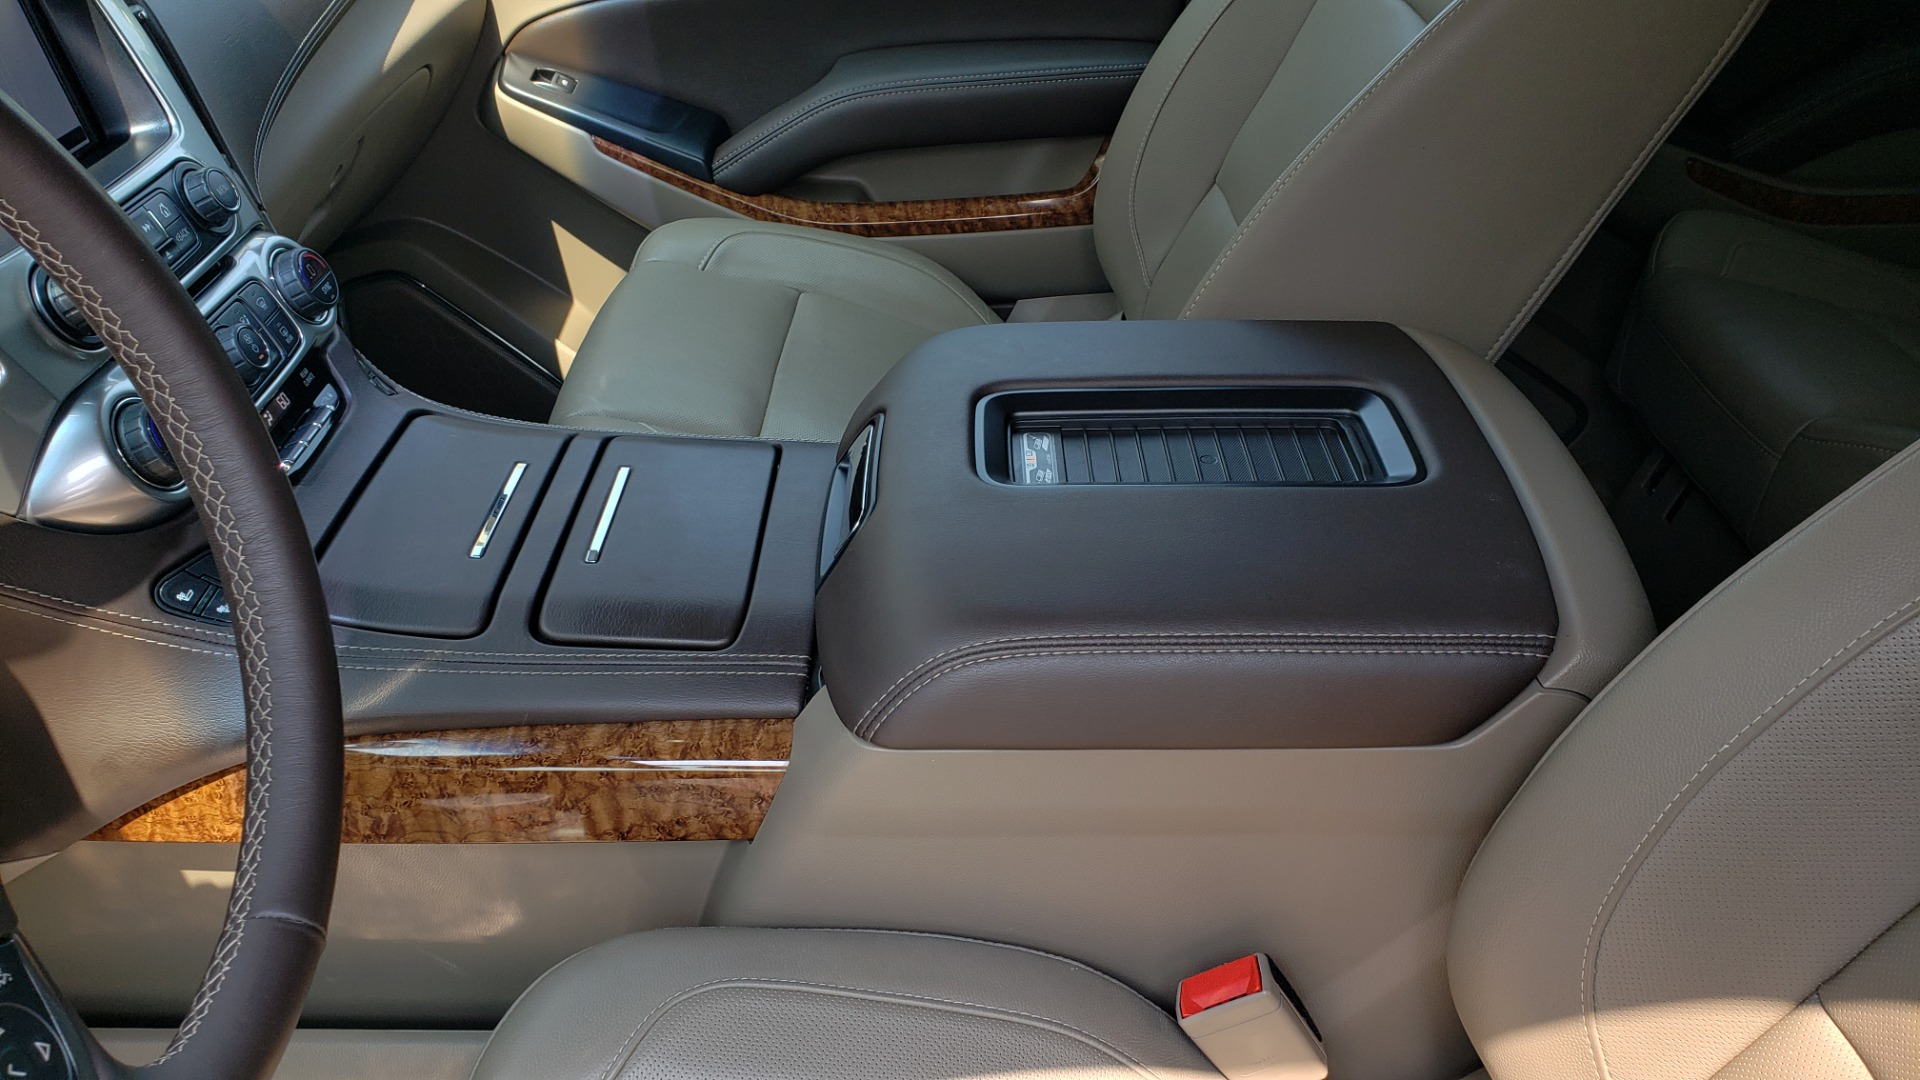 Used 2018 Chevrolet TAHOE PREMIER 4WD / NAV / SUNROOF / BOSE / 3-ROW / HUD / REARVIEW for sale $63,995 at Formula Imports in Charlotte NC 28227 62